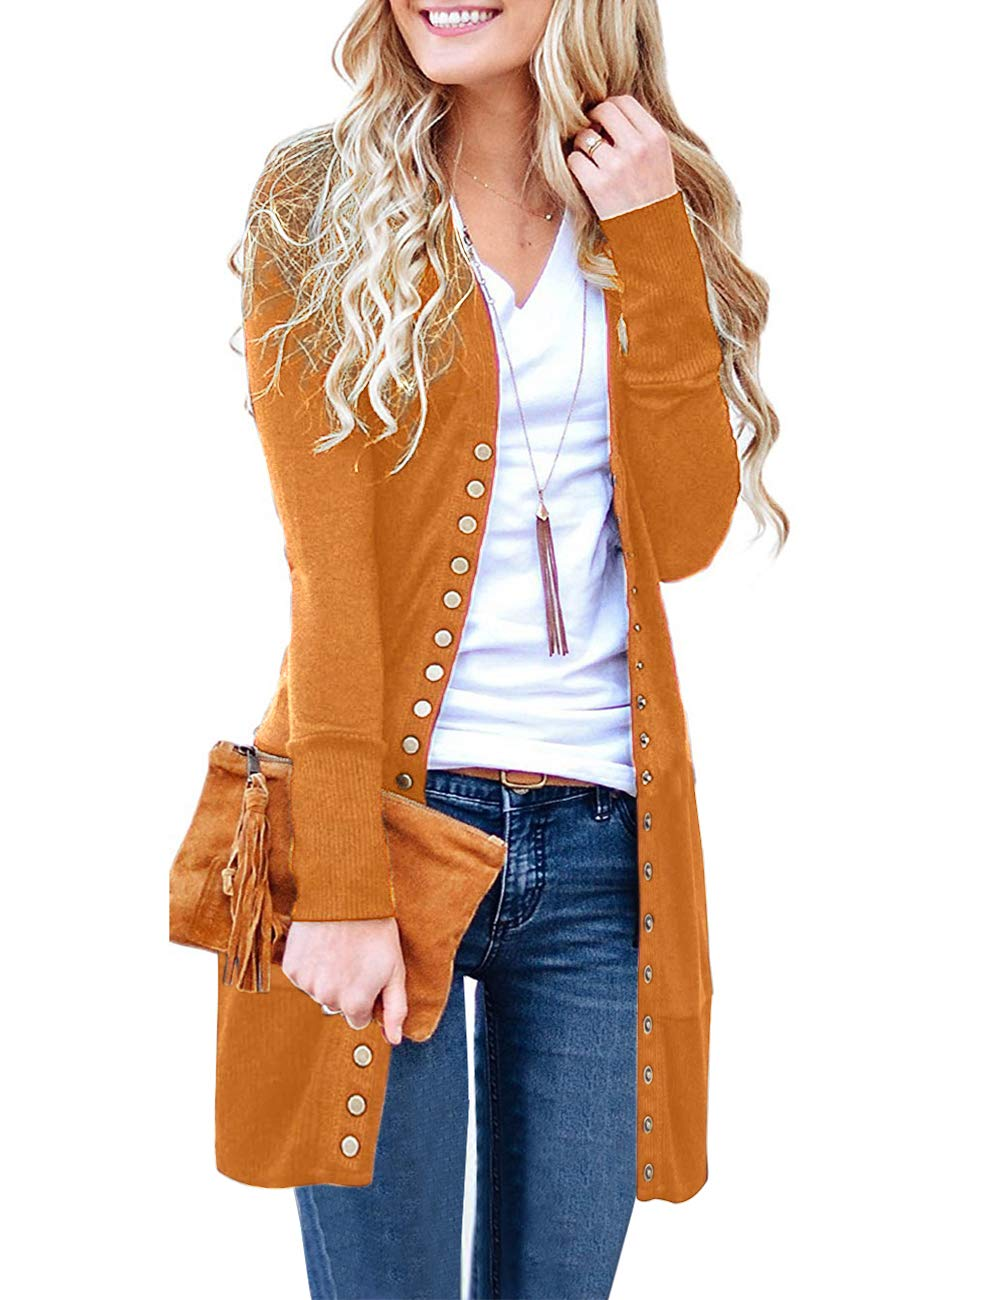 MEROKEETY Women's Long Sleeve Snap Button Down Solid Color Knit Ribbed Neckline Cardigans Mustard by MEROKEETY